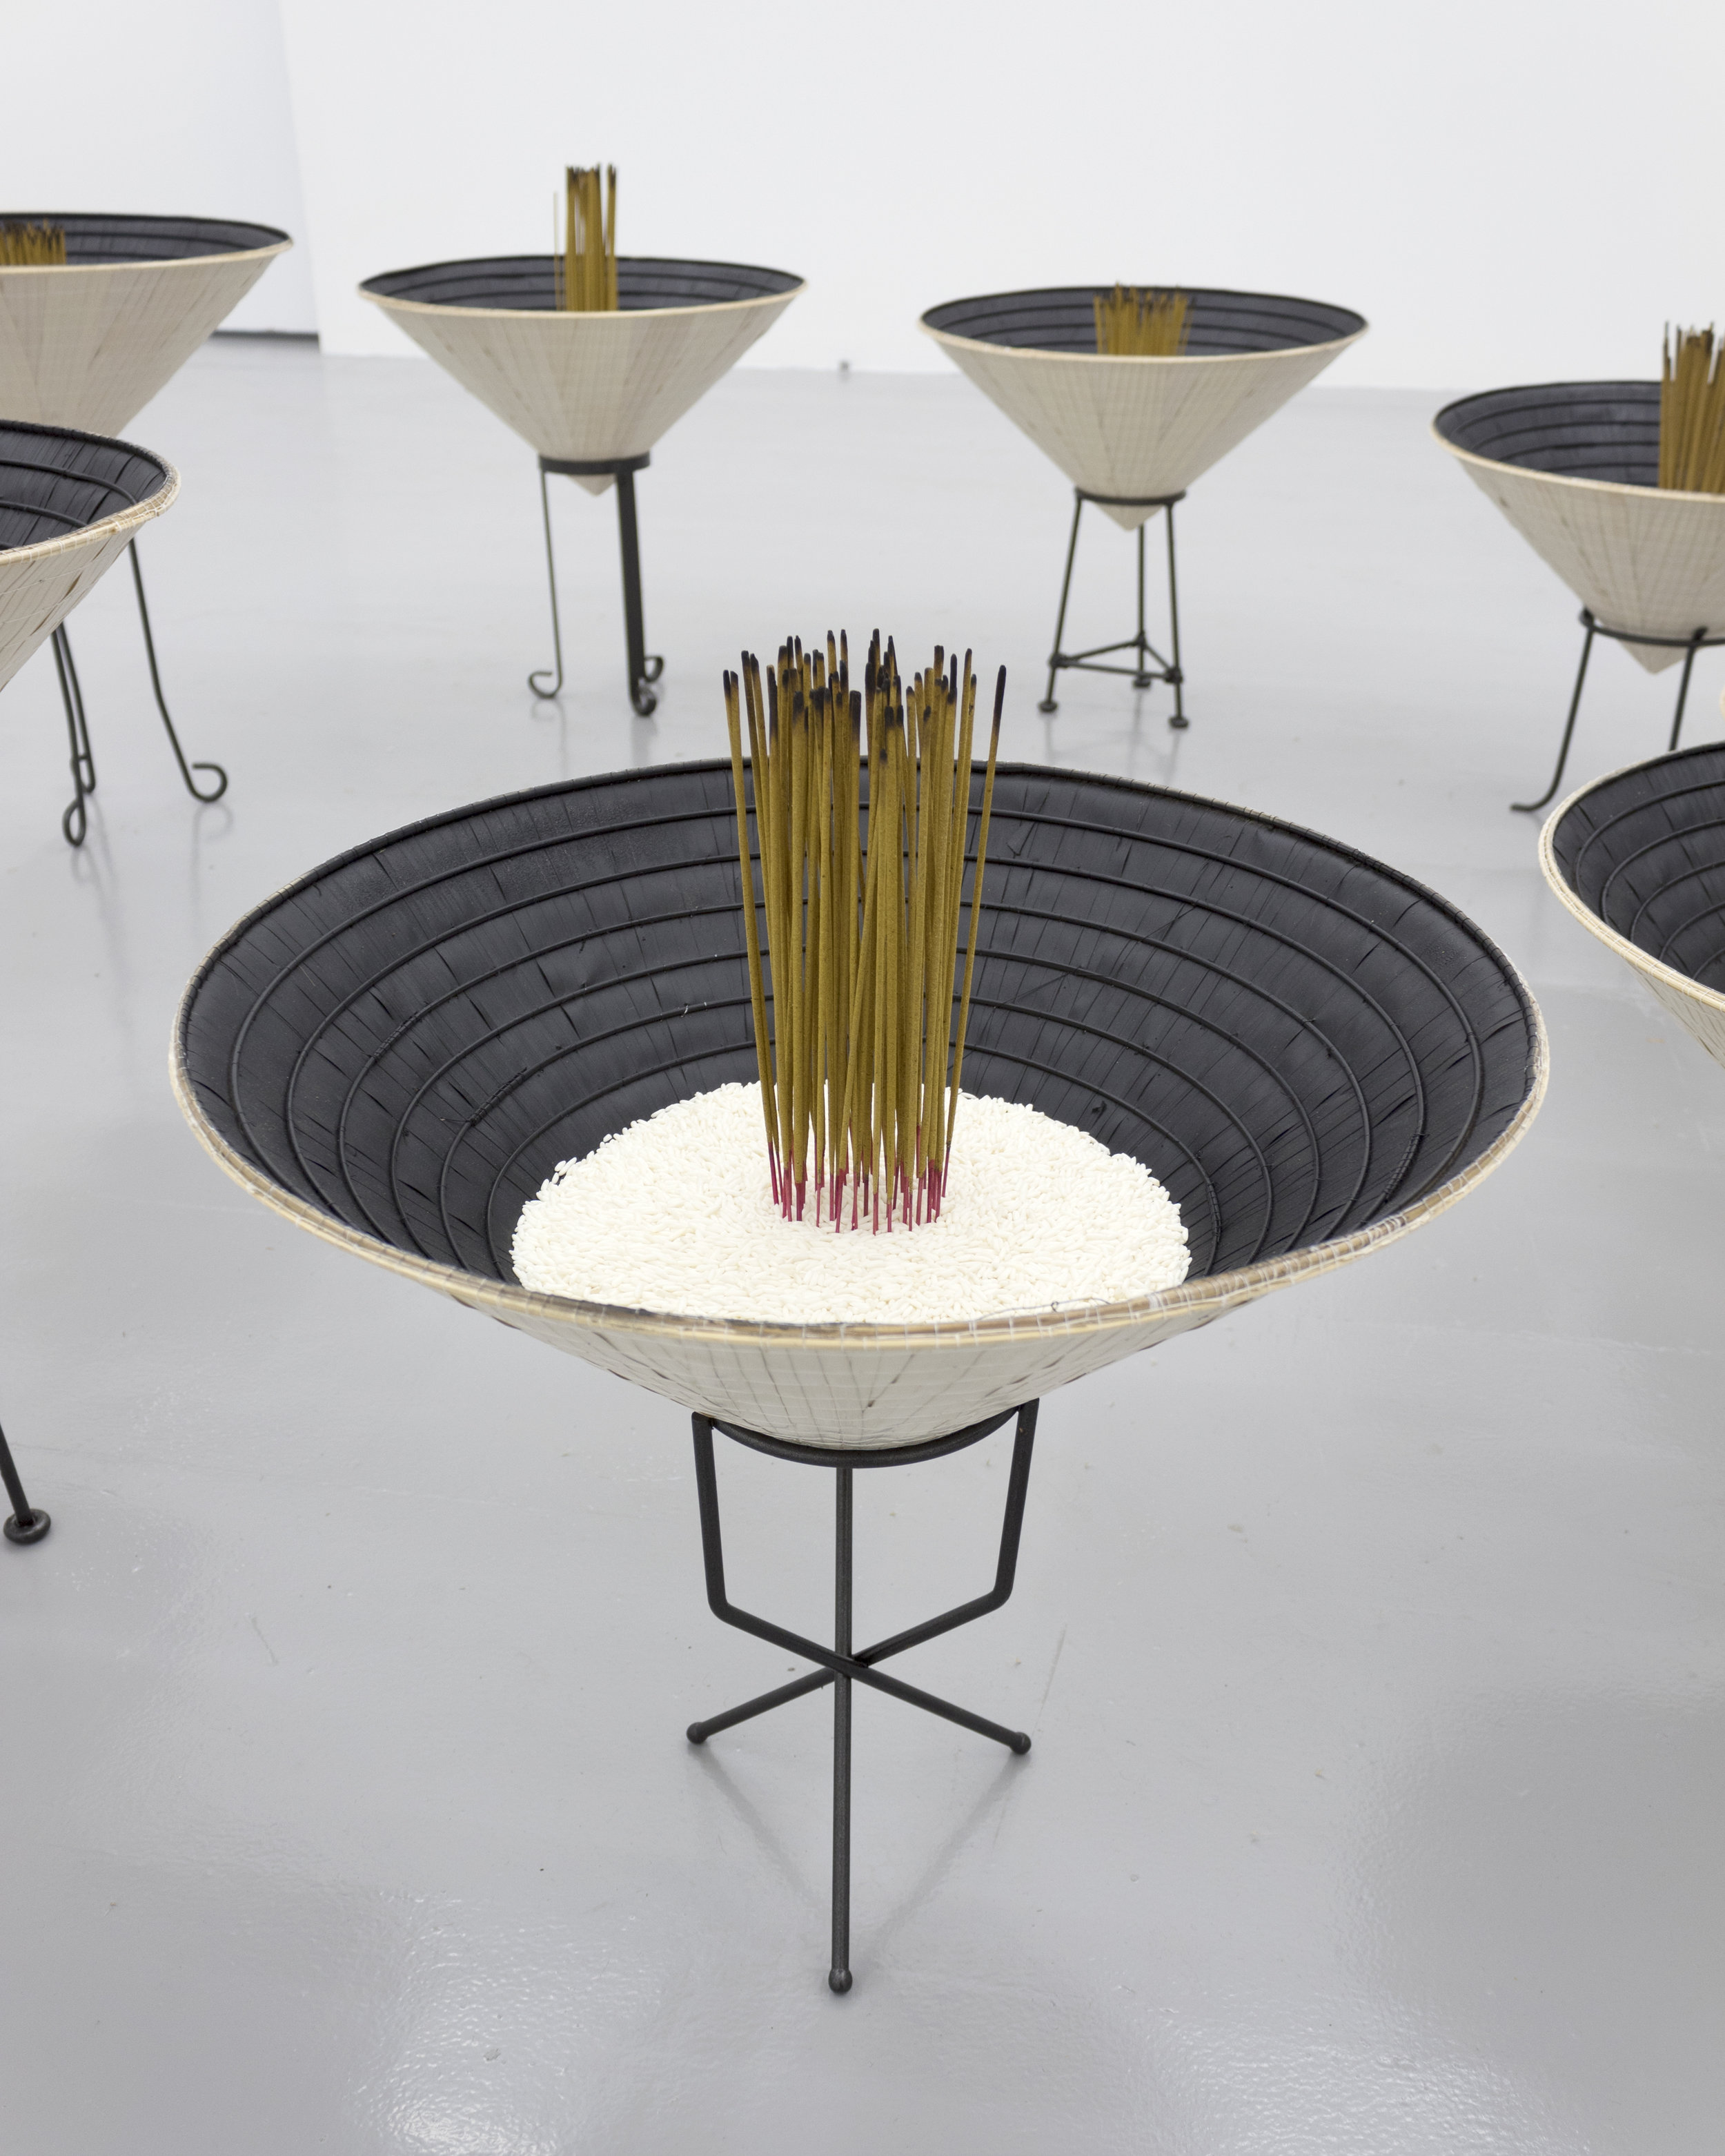 Millian Giang Lien Pham,  Reforge: 9 Phases (Eight),  2019. Conical hat, sweet rice, incense, metal stand